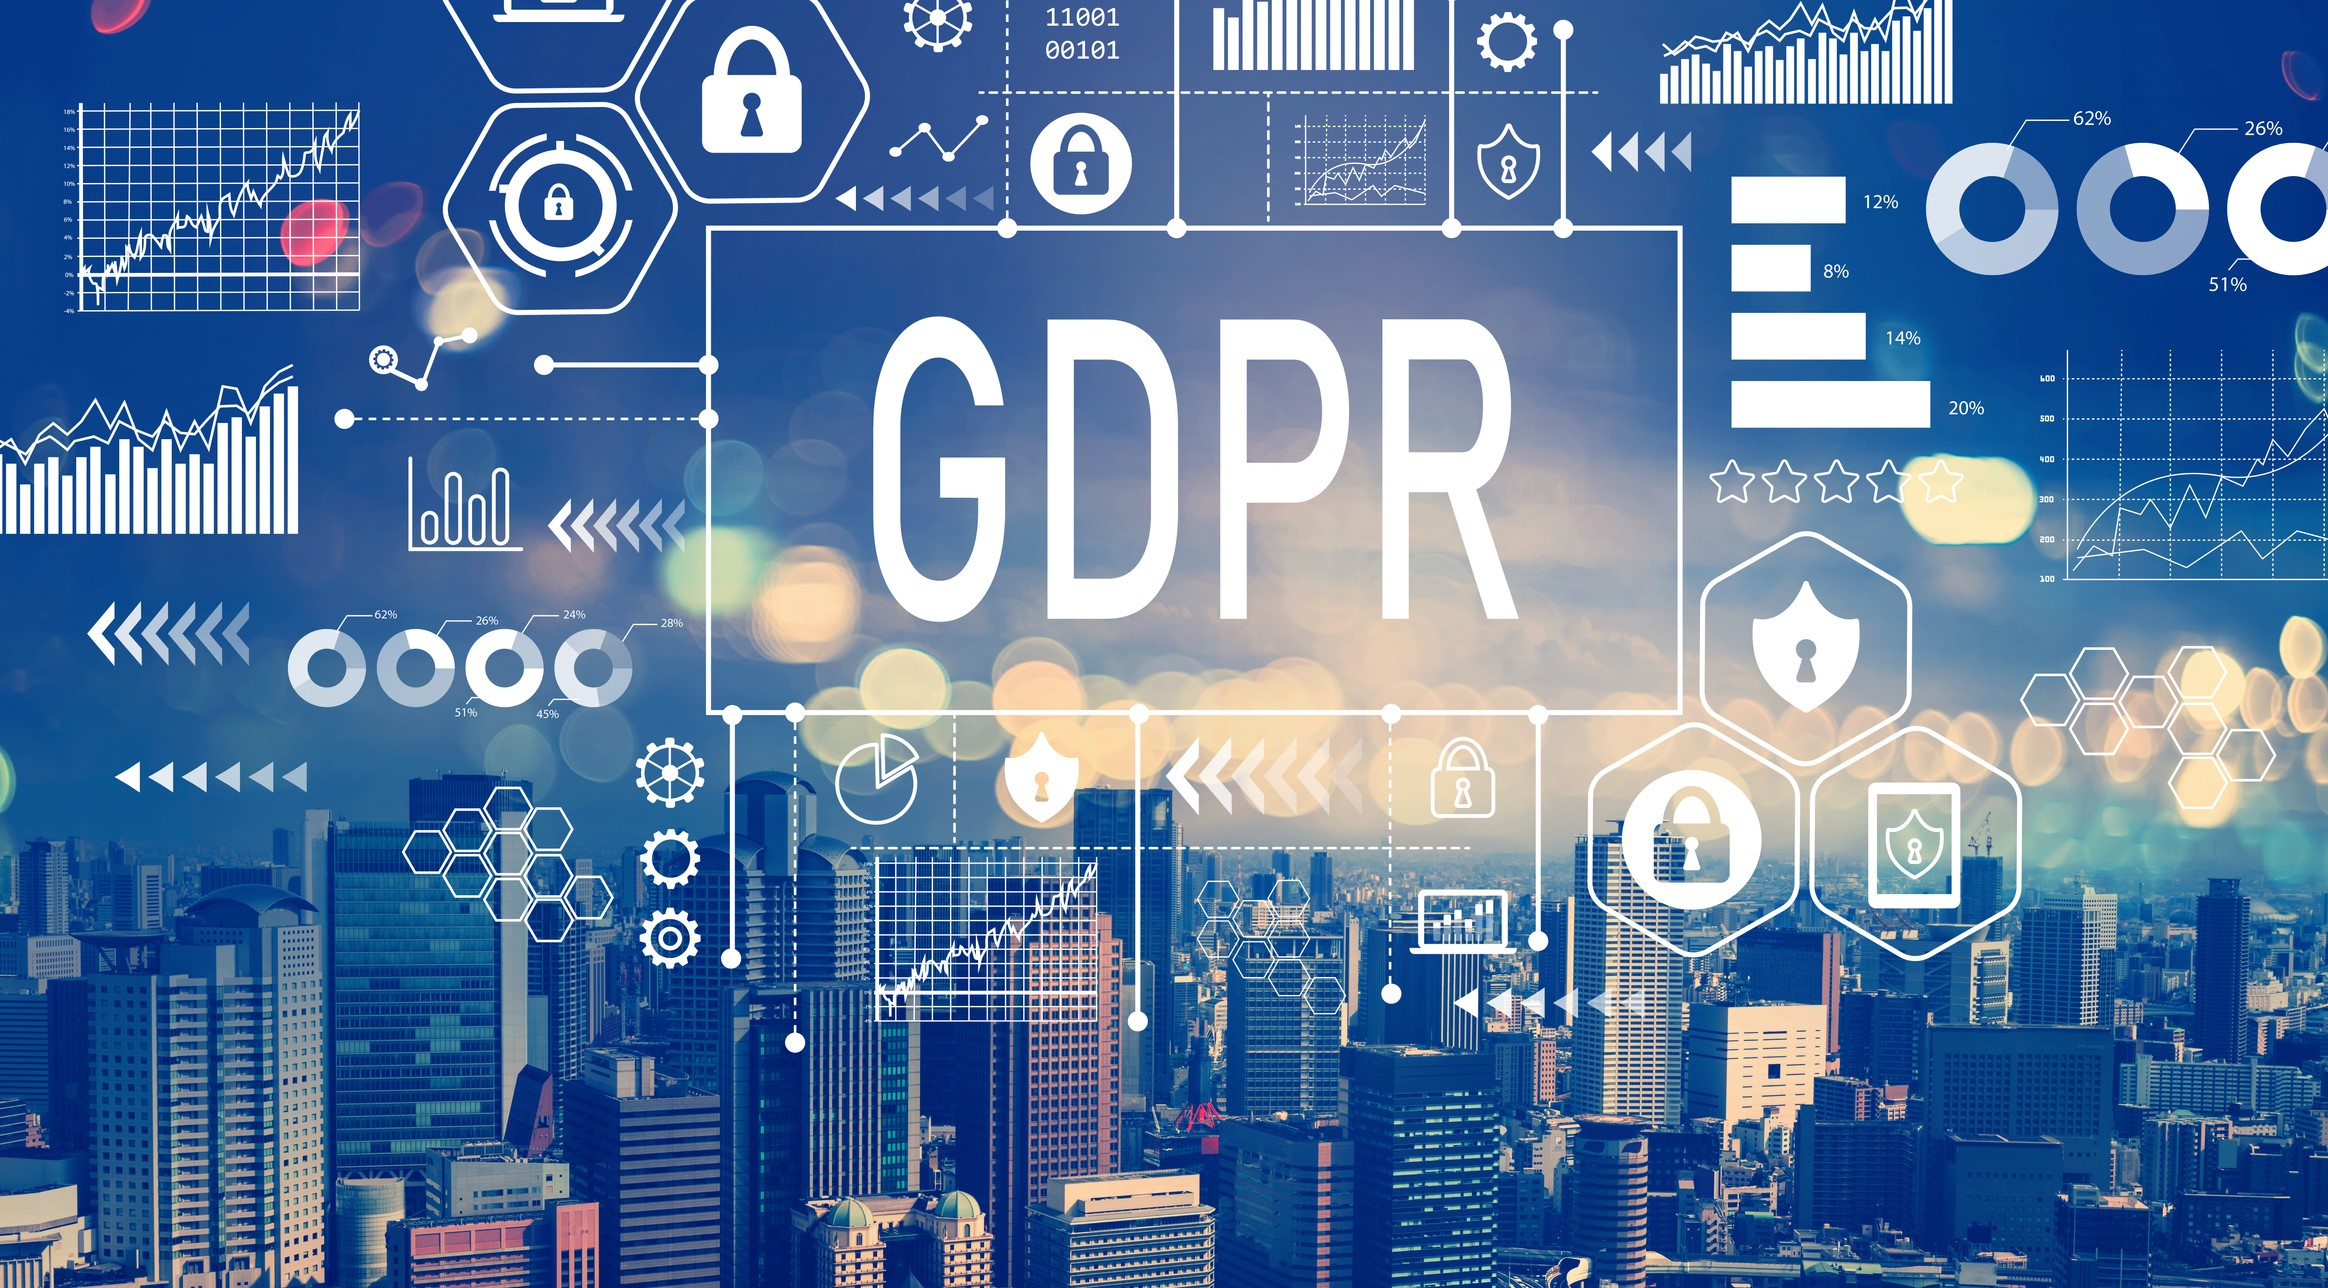 GDPR General Data Protection Regulations